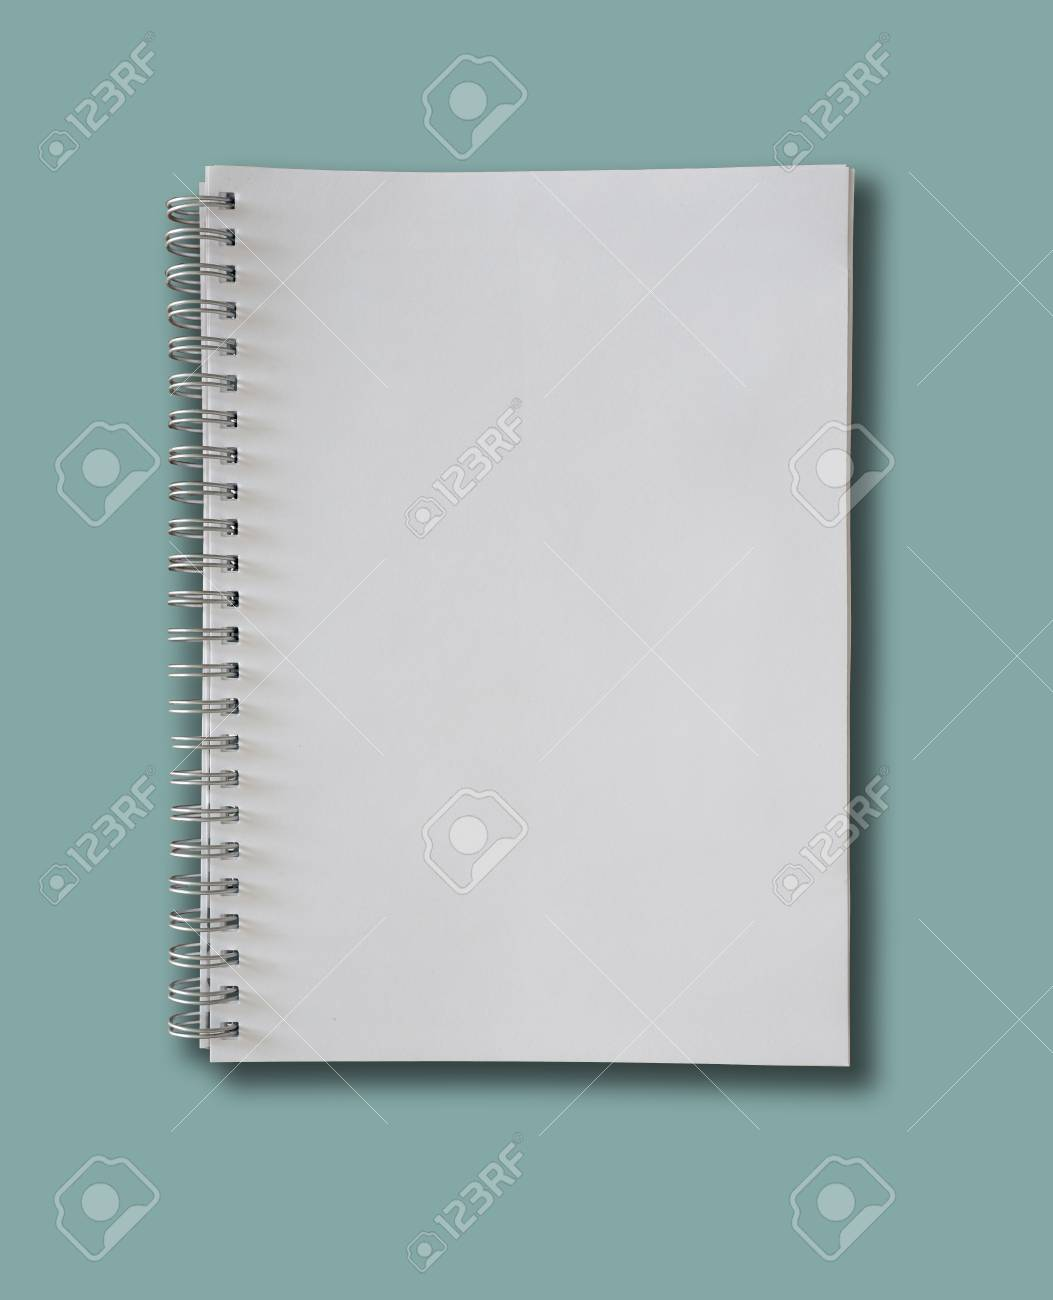 spiral-bound blank page notepad on blue background - 123379362